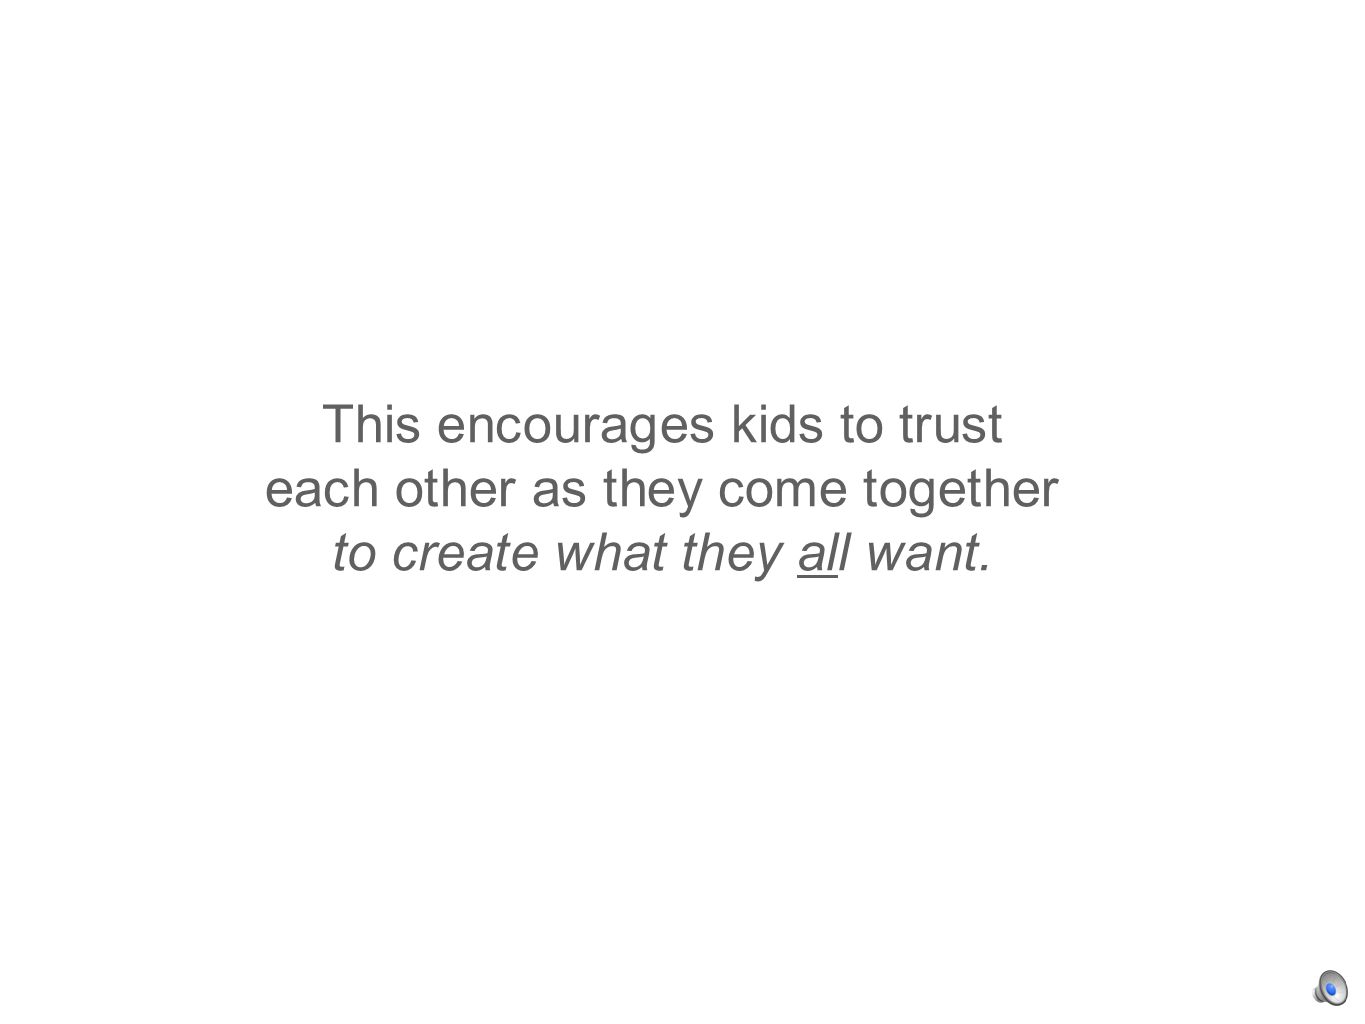 This encourages kids to trust each other as they come together to create what they all want.